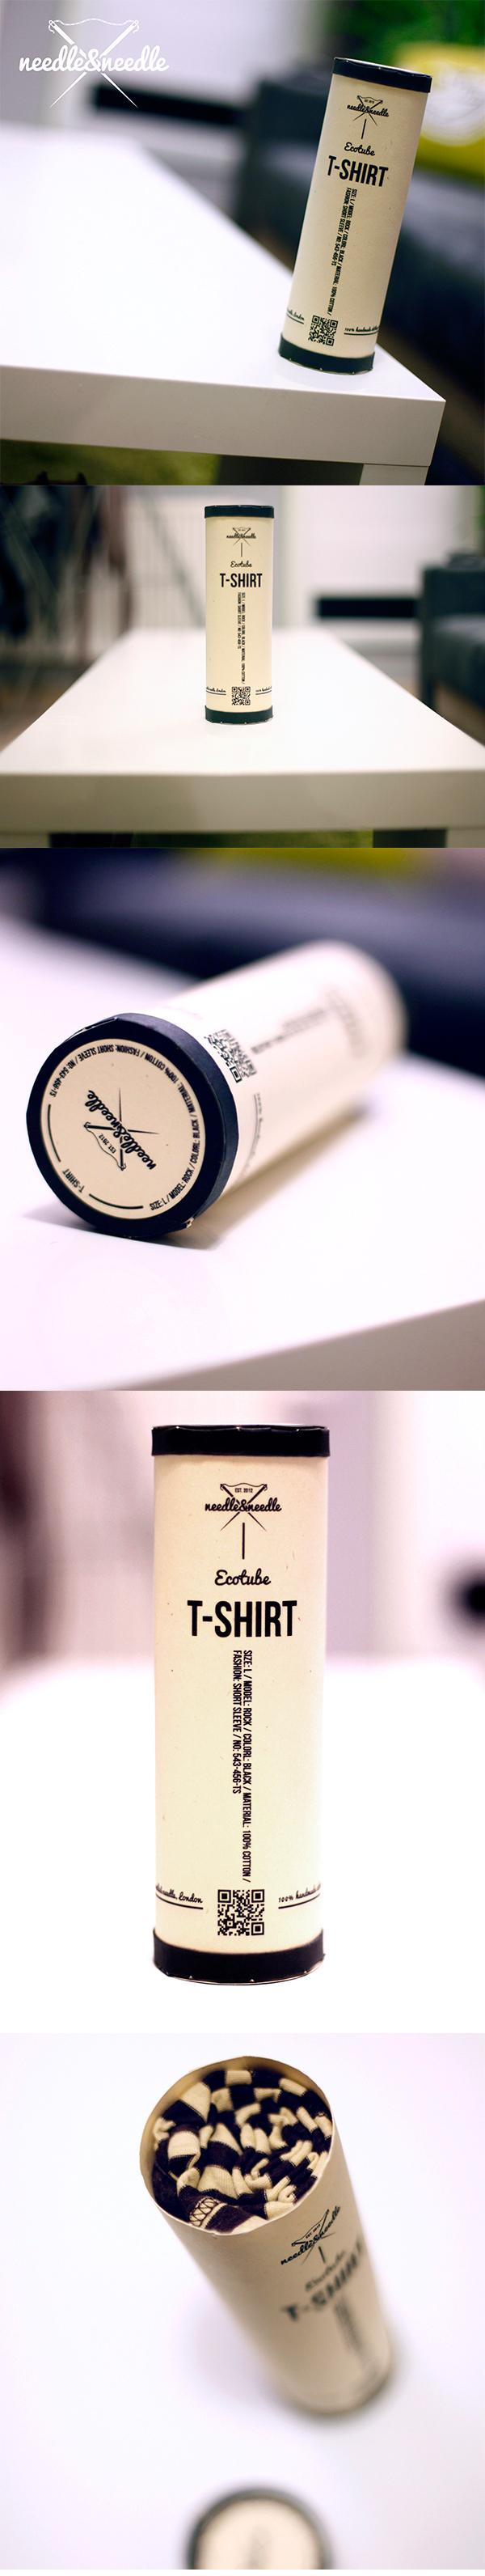 Ecotube packaging - Packaging Design on Creattica: Your source for design inspiration